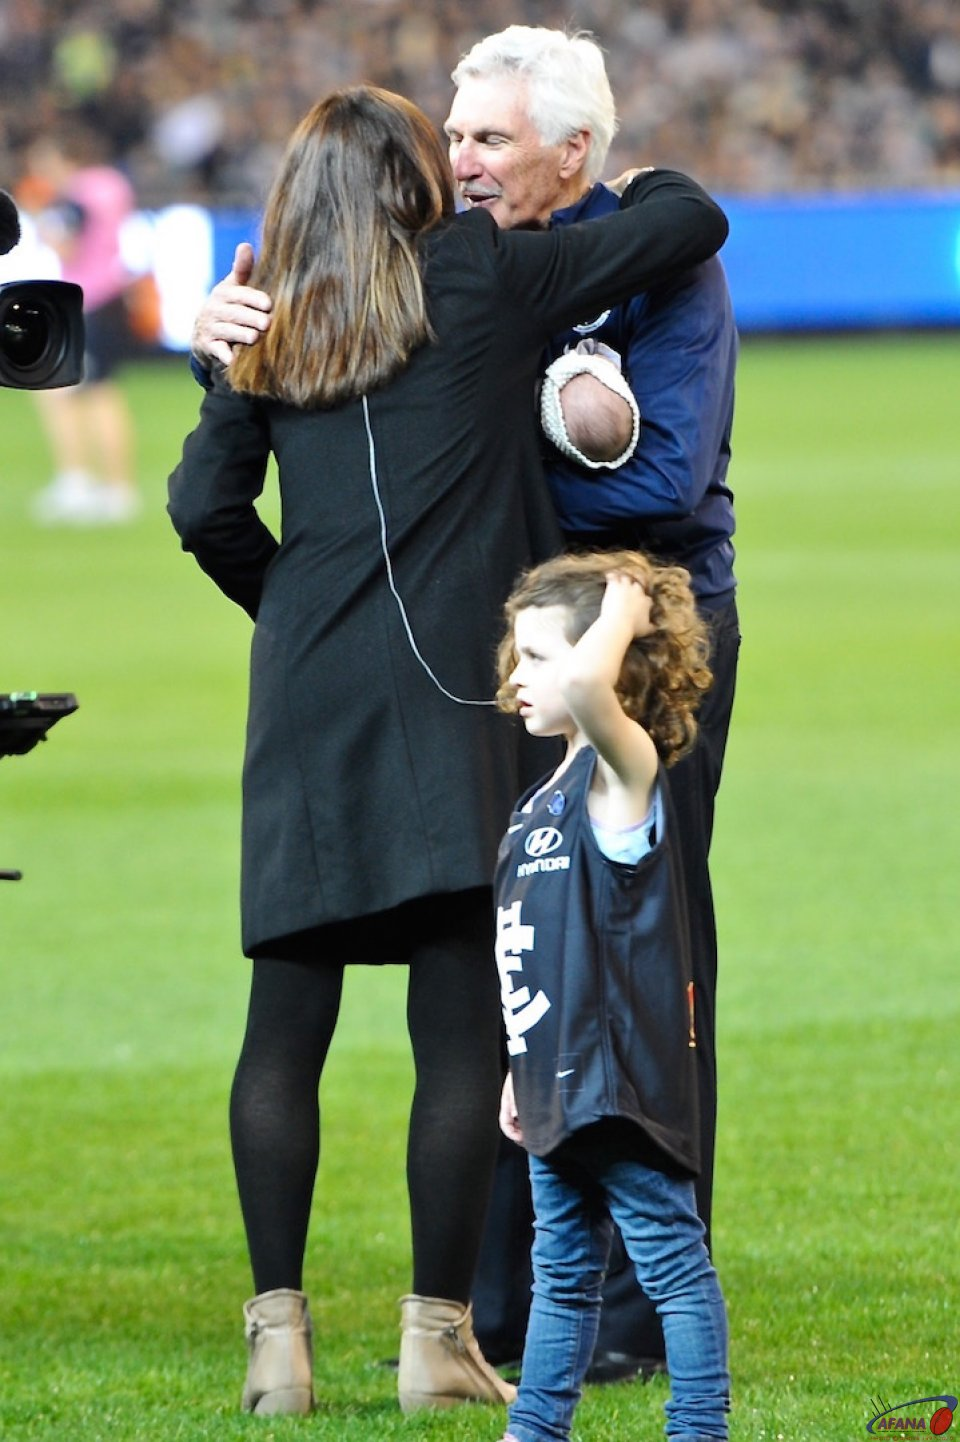 Christy Malthouse gets a hug from Dad